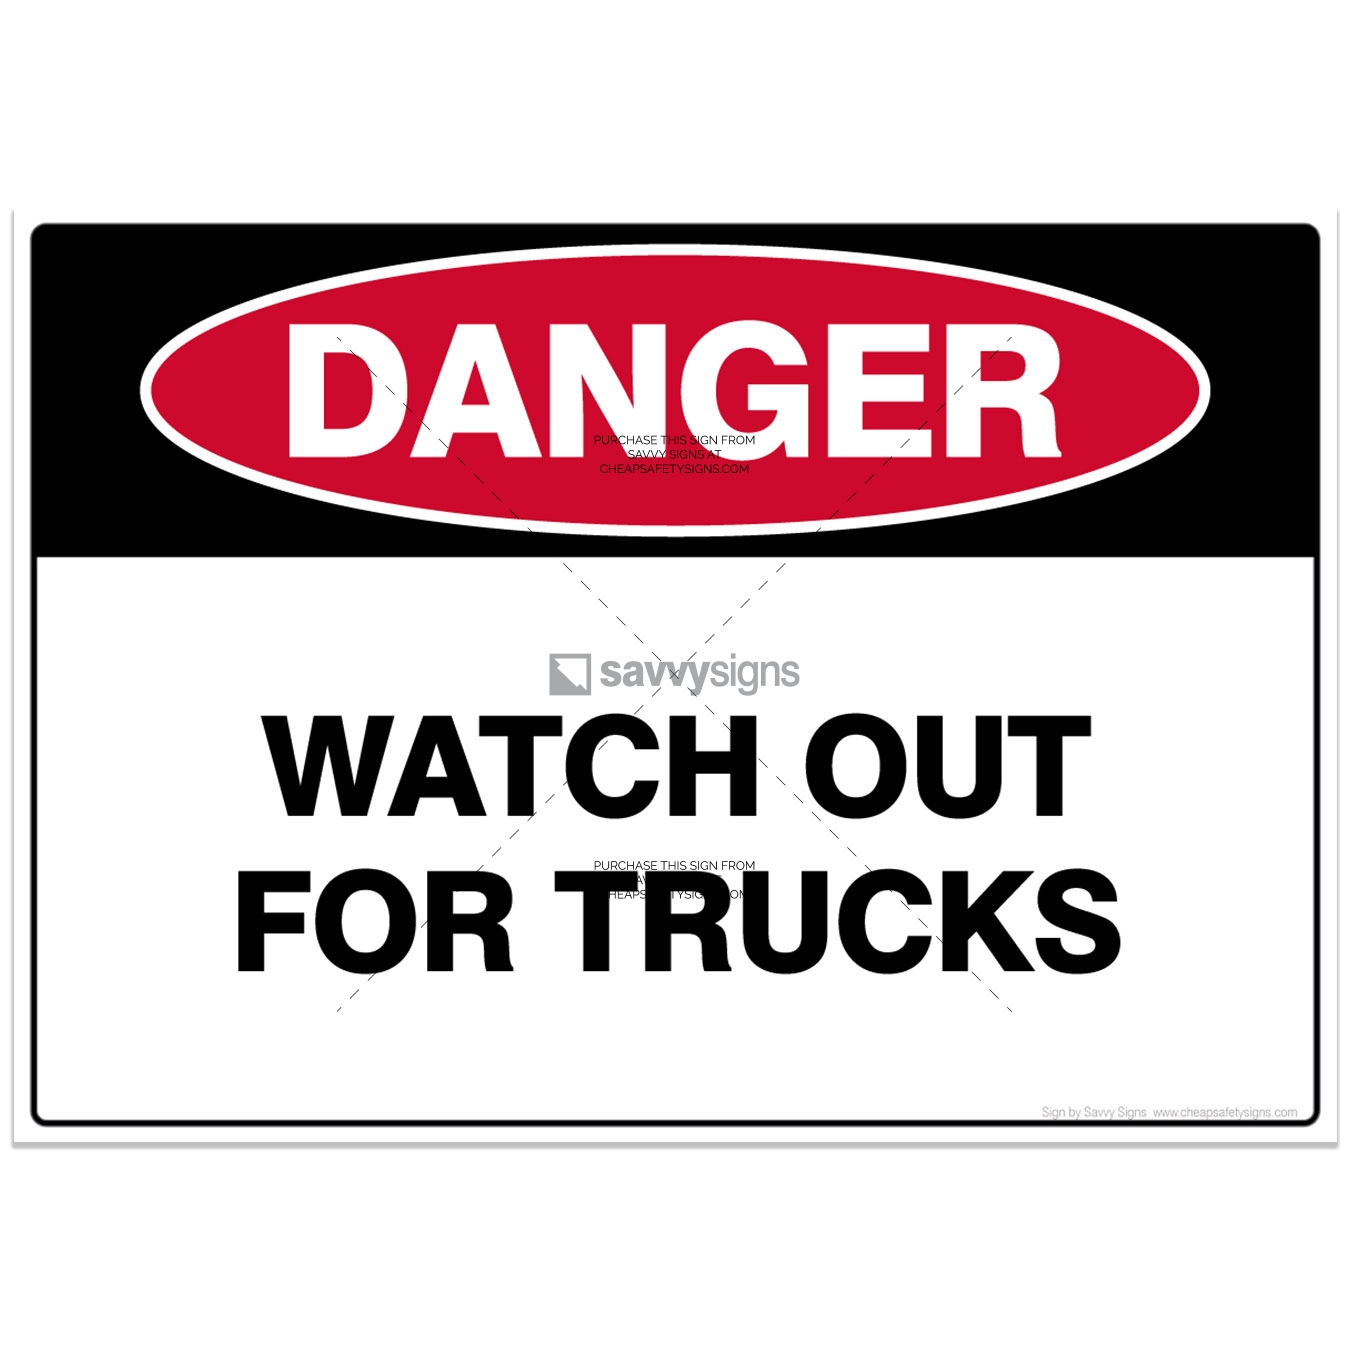 SSDAN3067-DANGER-Workplace-Safety-Signs_Savvy-Signs_v4.1